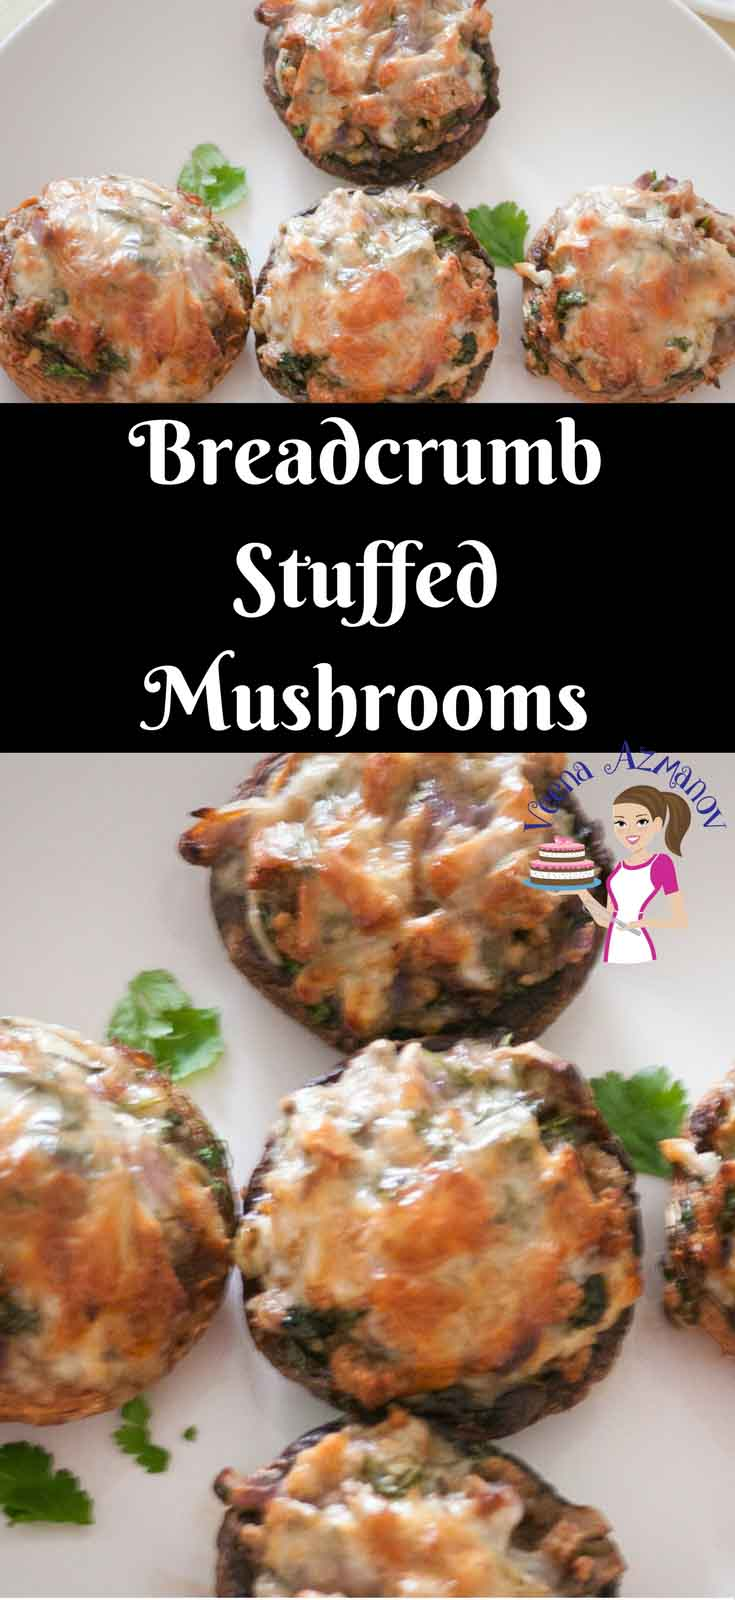 This Breadcrumb Stuffed Mushrooms is a super easy recipe and simple appetizer recipe. Take barely any time to make and the cheesy breadcrumbs just melt in the mouth. Perfect way to dress a celebration of weekend dinner table.